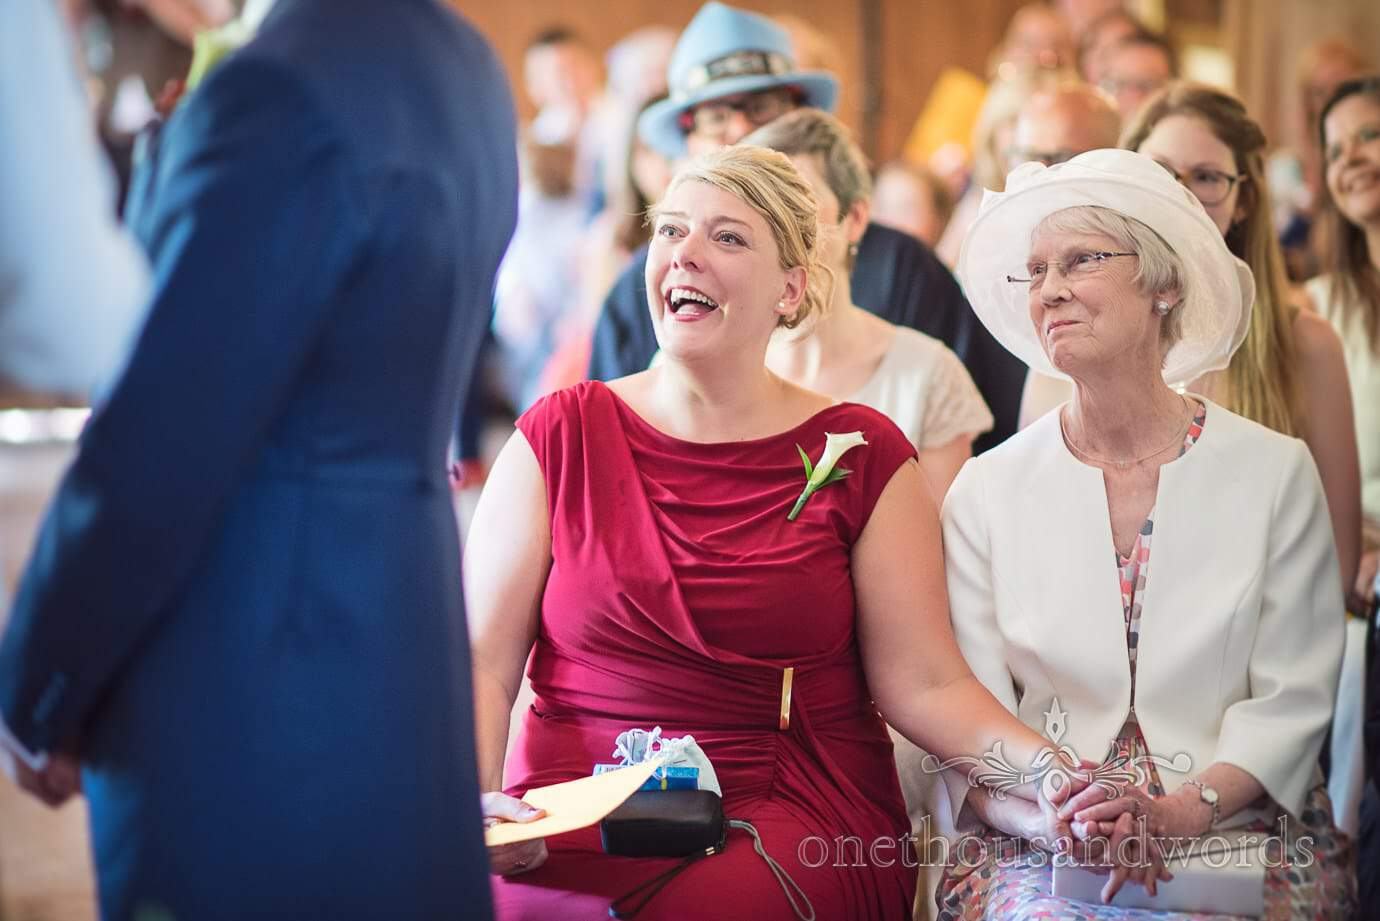 Maid of honour in red dress laughs during wedding ceremony at Purbeck House Hotel